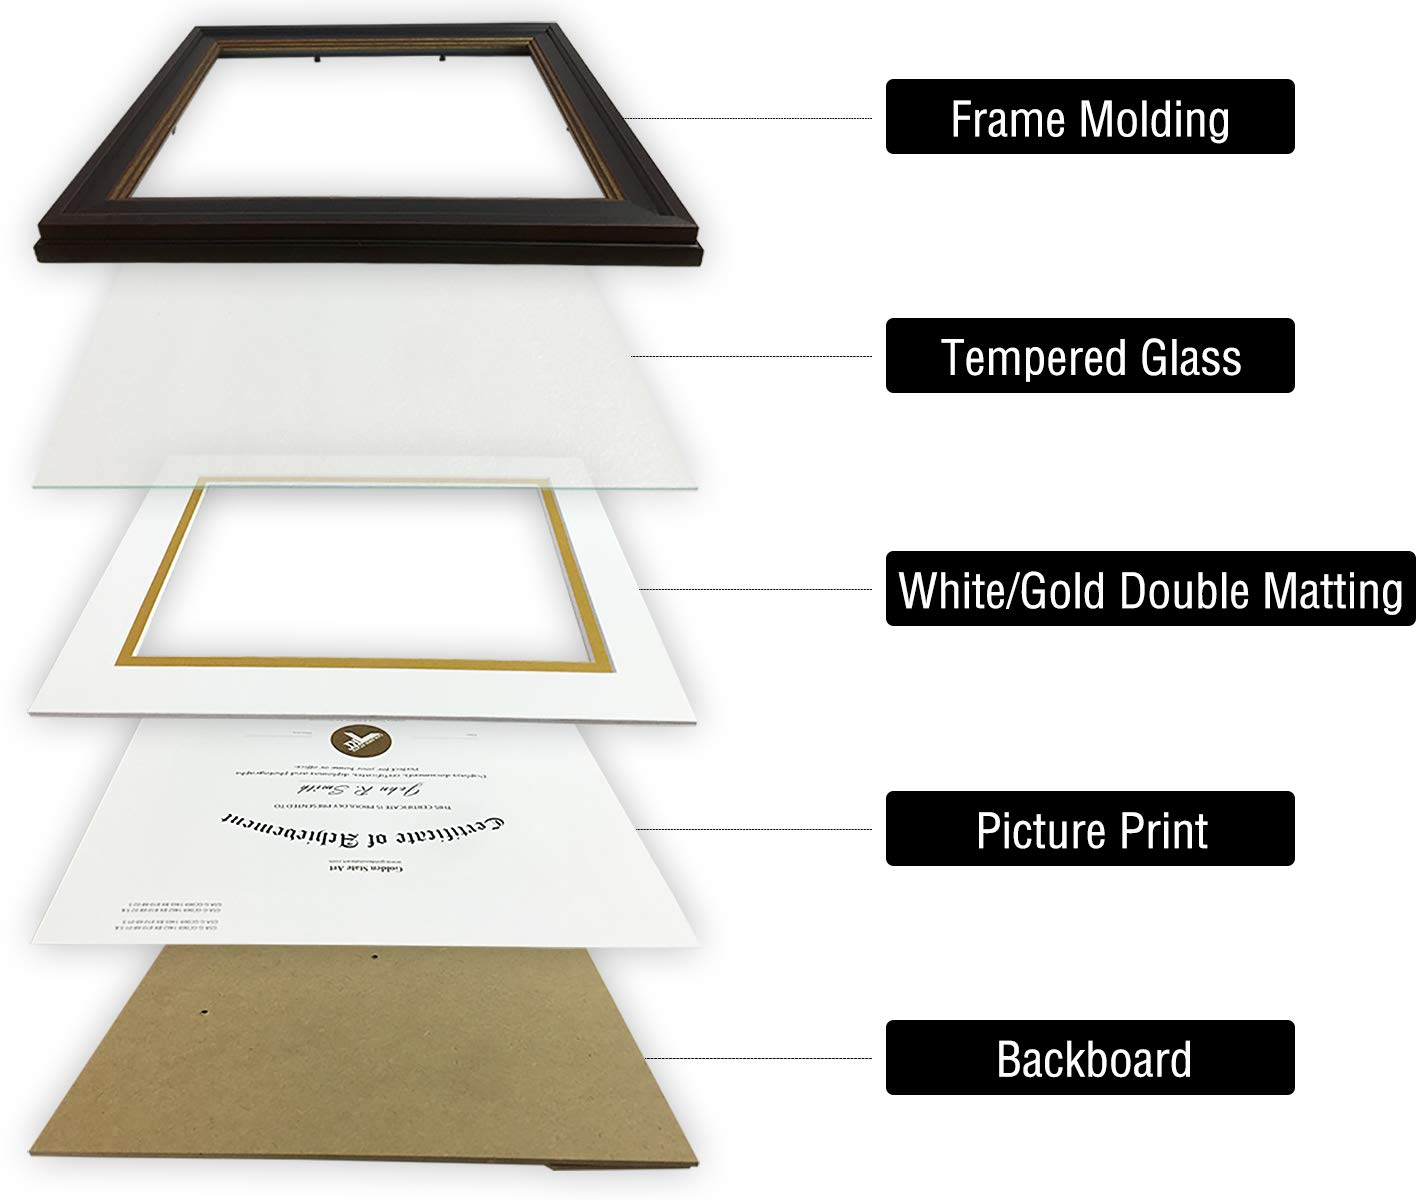 Black Gold /& Burgundy Color Includes White Over Gold Double Mat Real Glass /& Table-top Display 8x10 Frame for 6x8 Diploma//Certificate Golden State Art